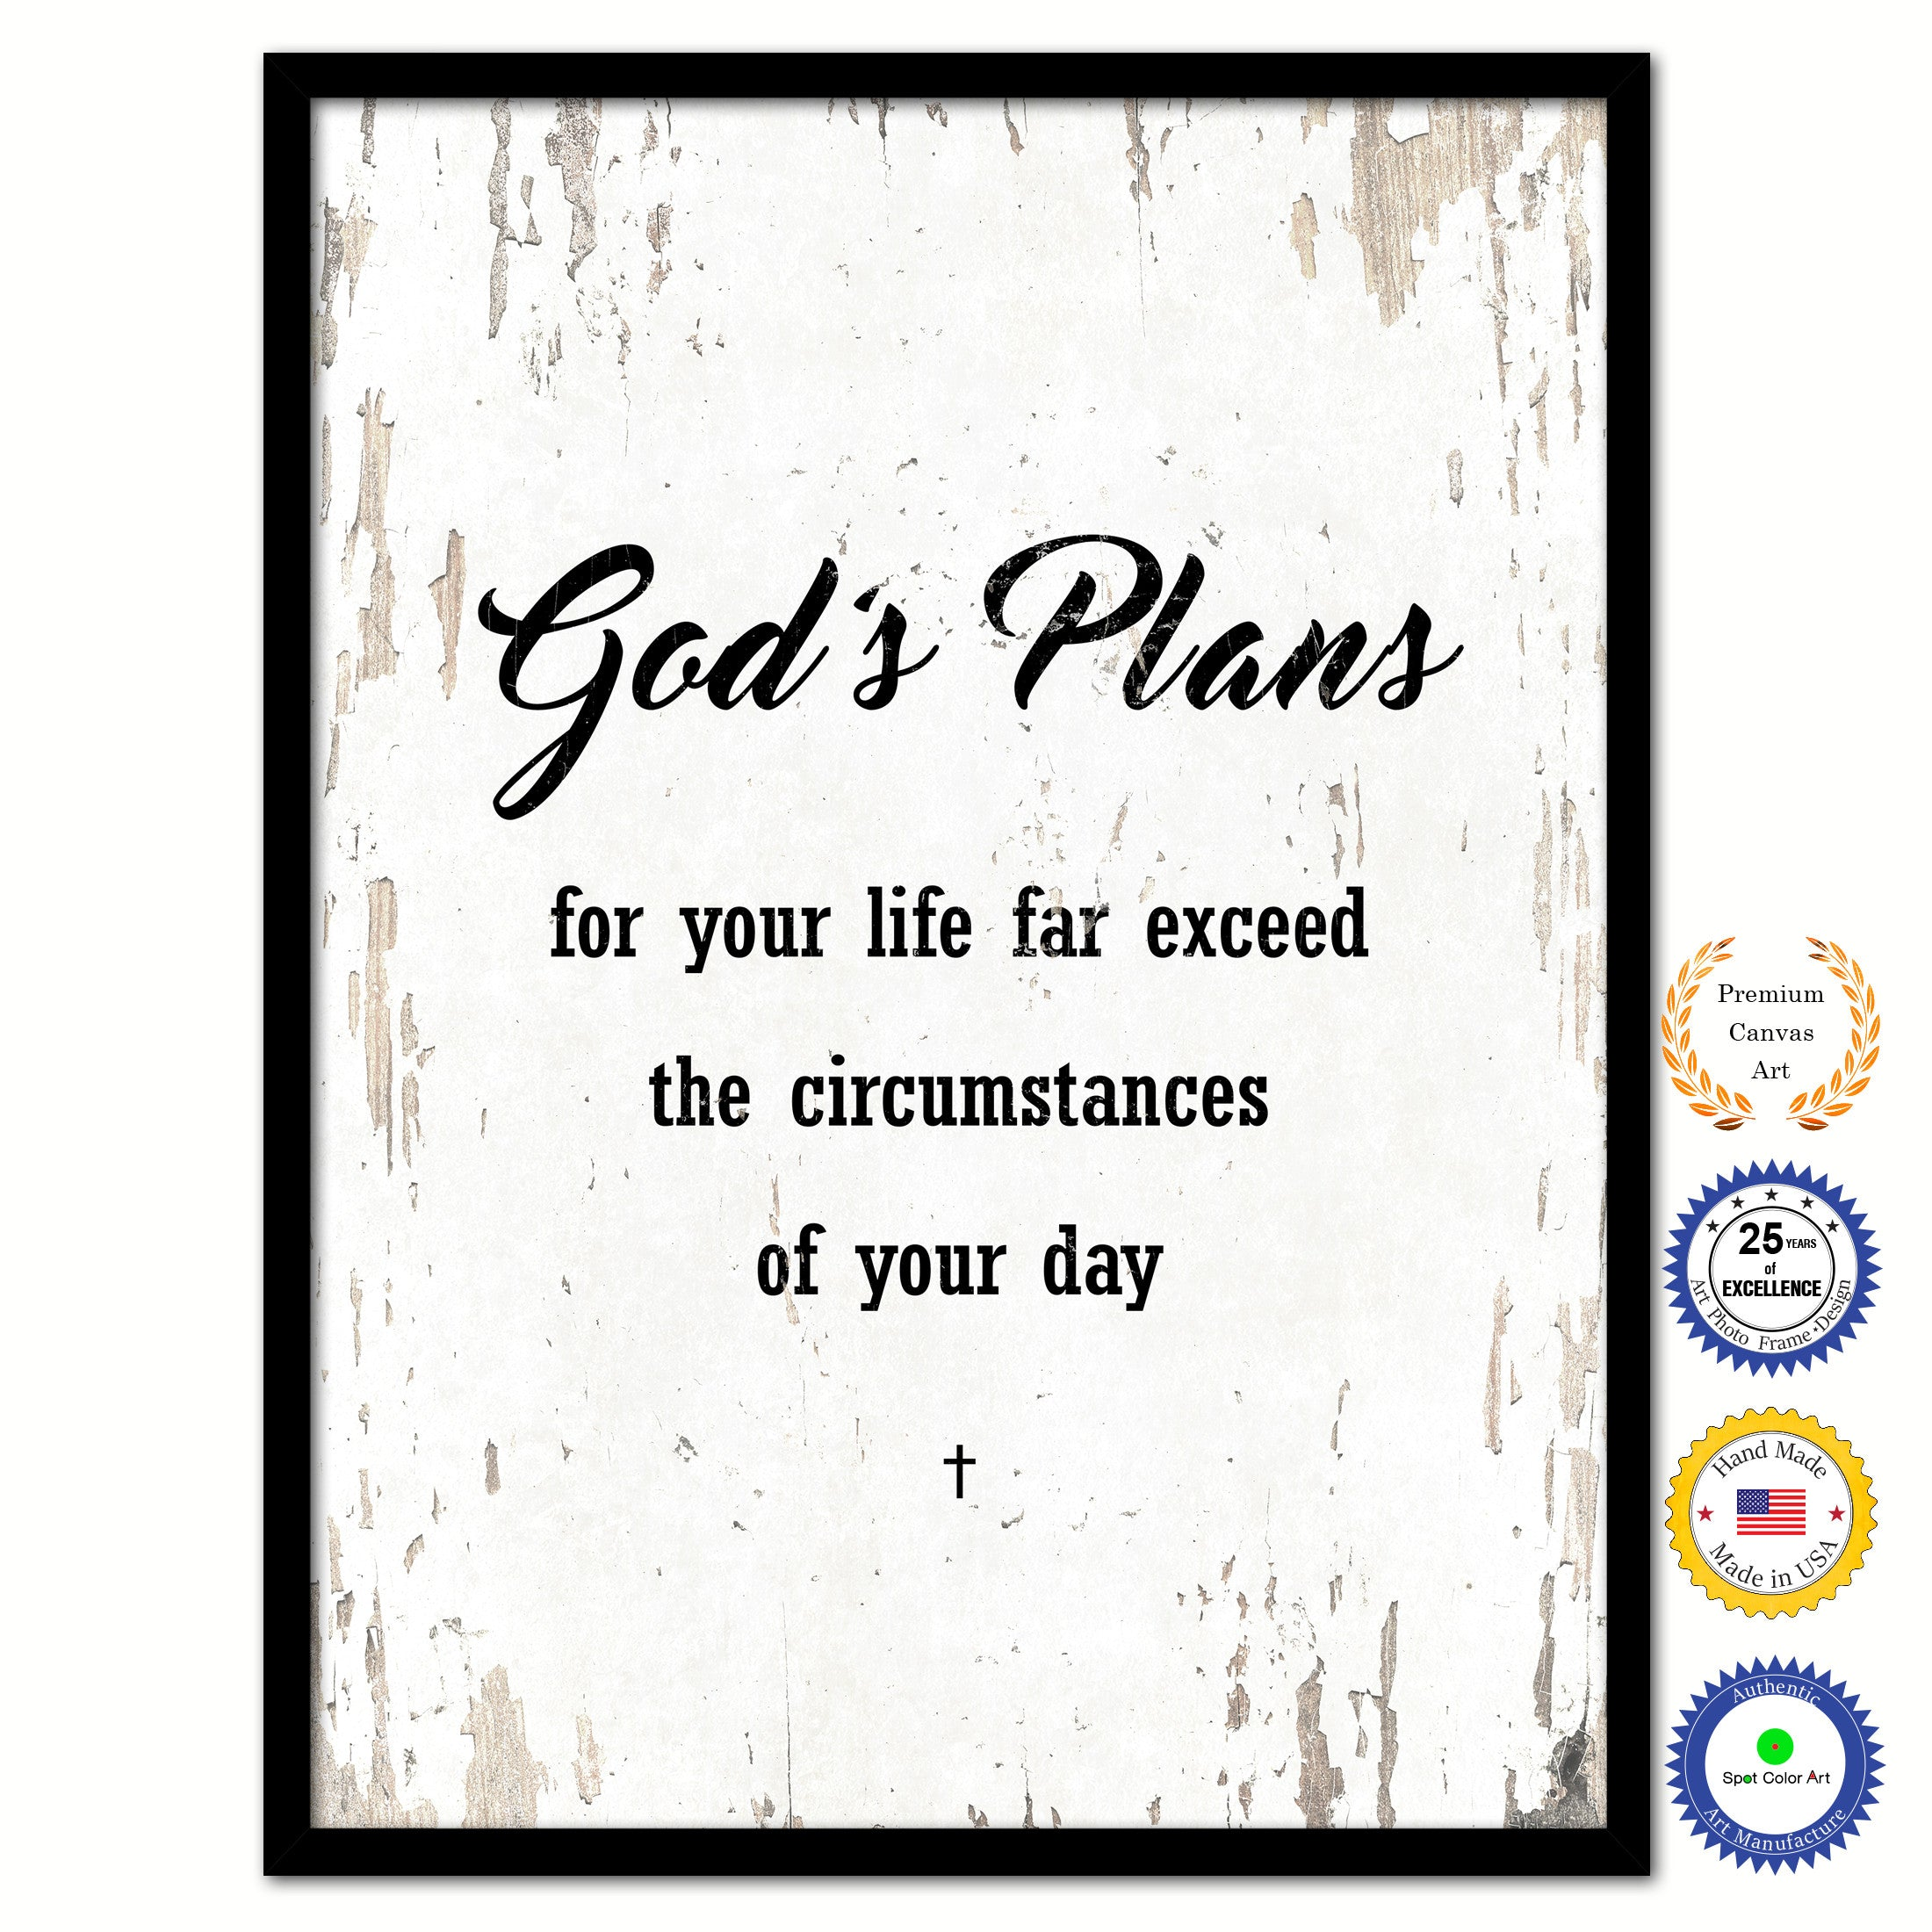 Bible Inspirational Quotes Of The Day: God's Plans For Your Life Far Exceed The Circumstances Of